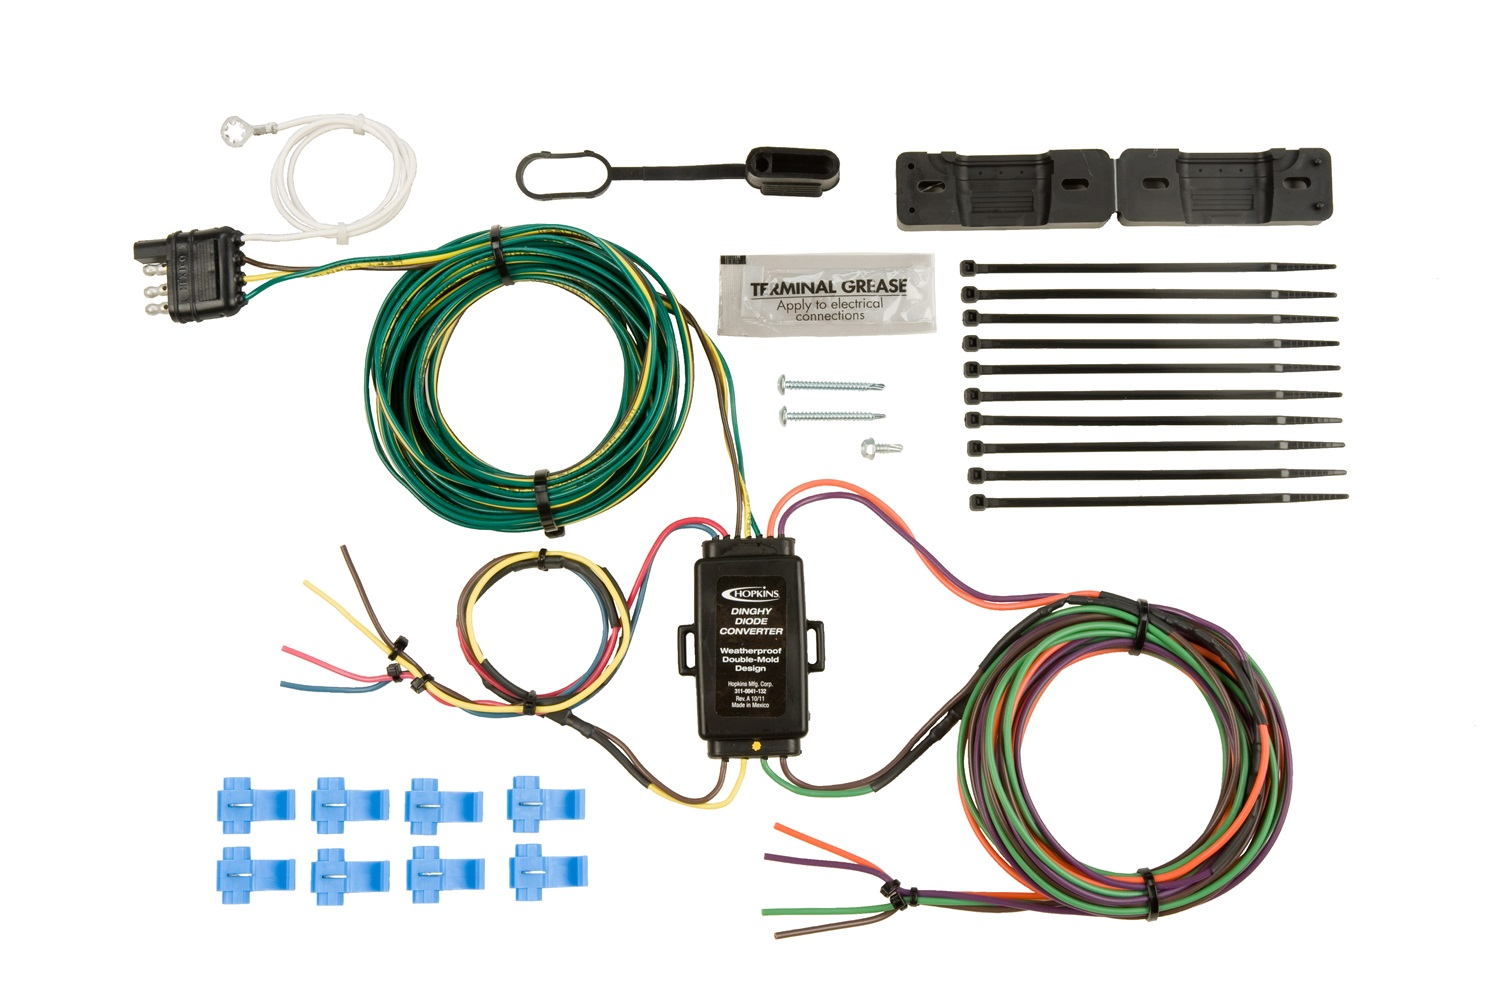 Etrailer Wiring Diagram Hopkins 55999 Posts 7way Rv Trailer Connector Towing Solution Plug In Simpler Vehicle To Wells Cargo